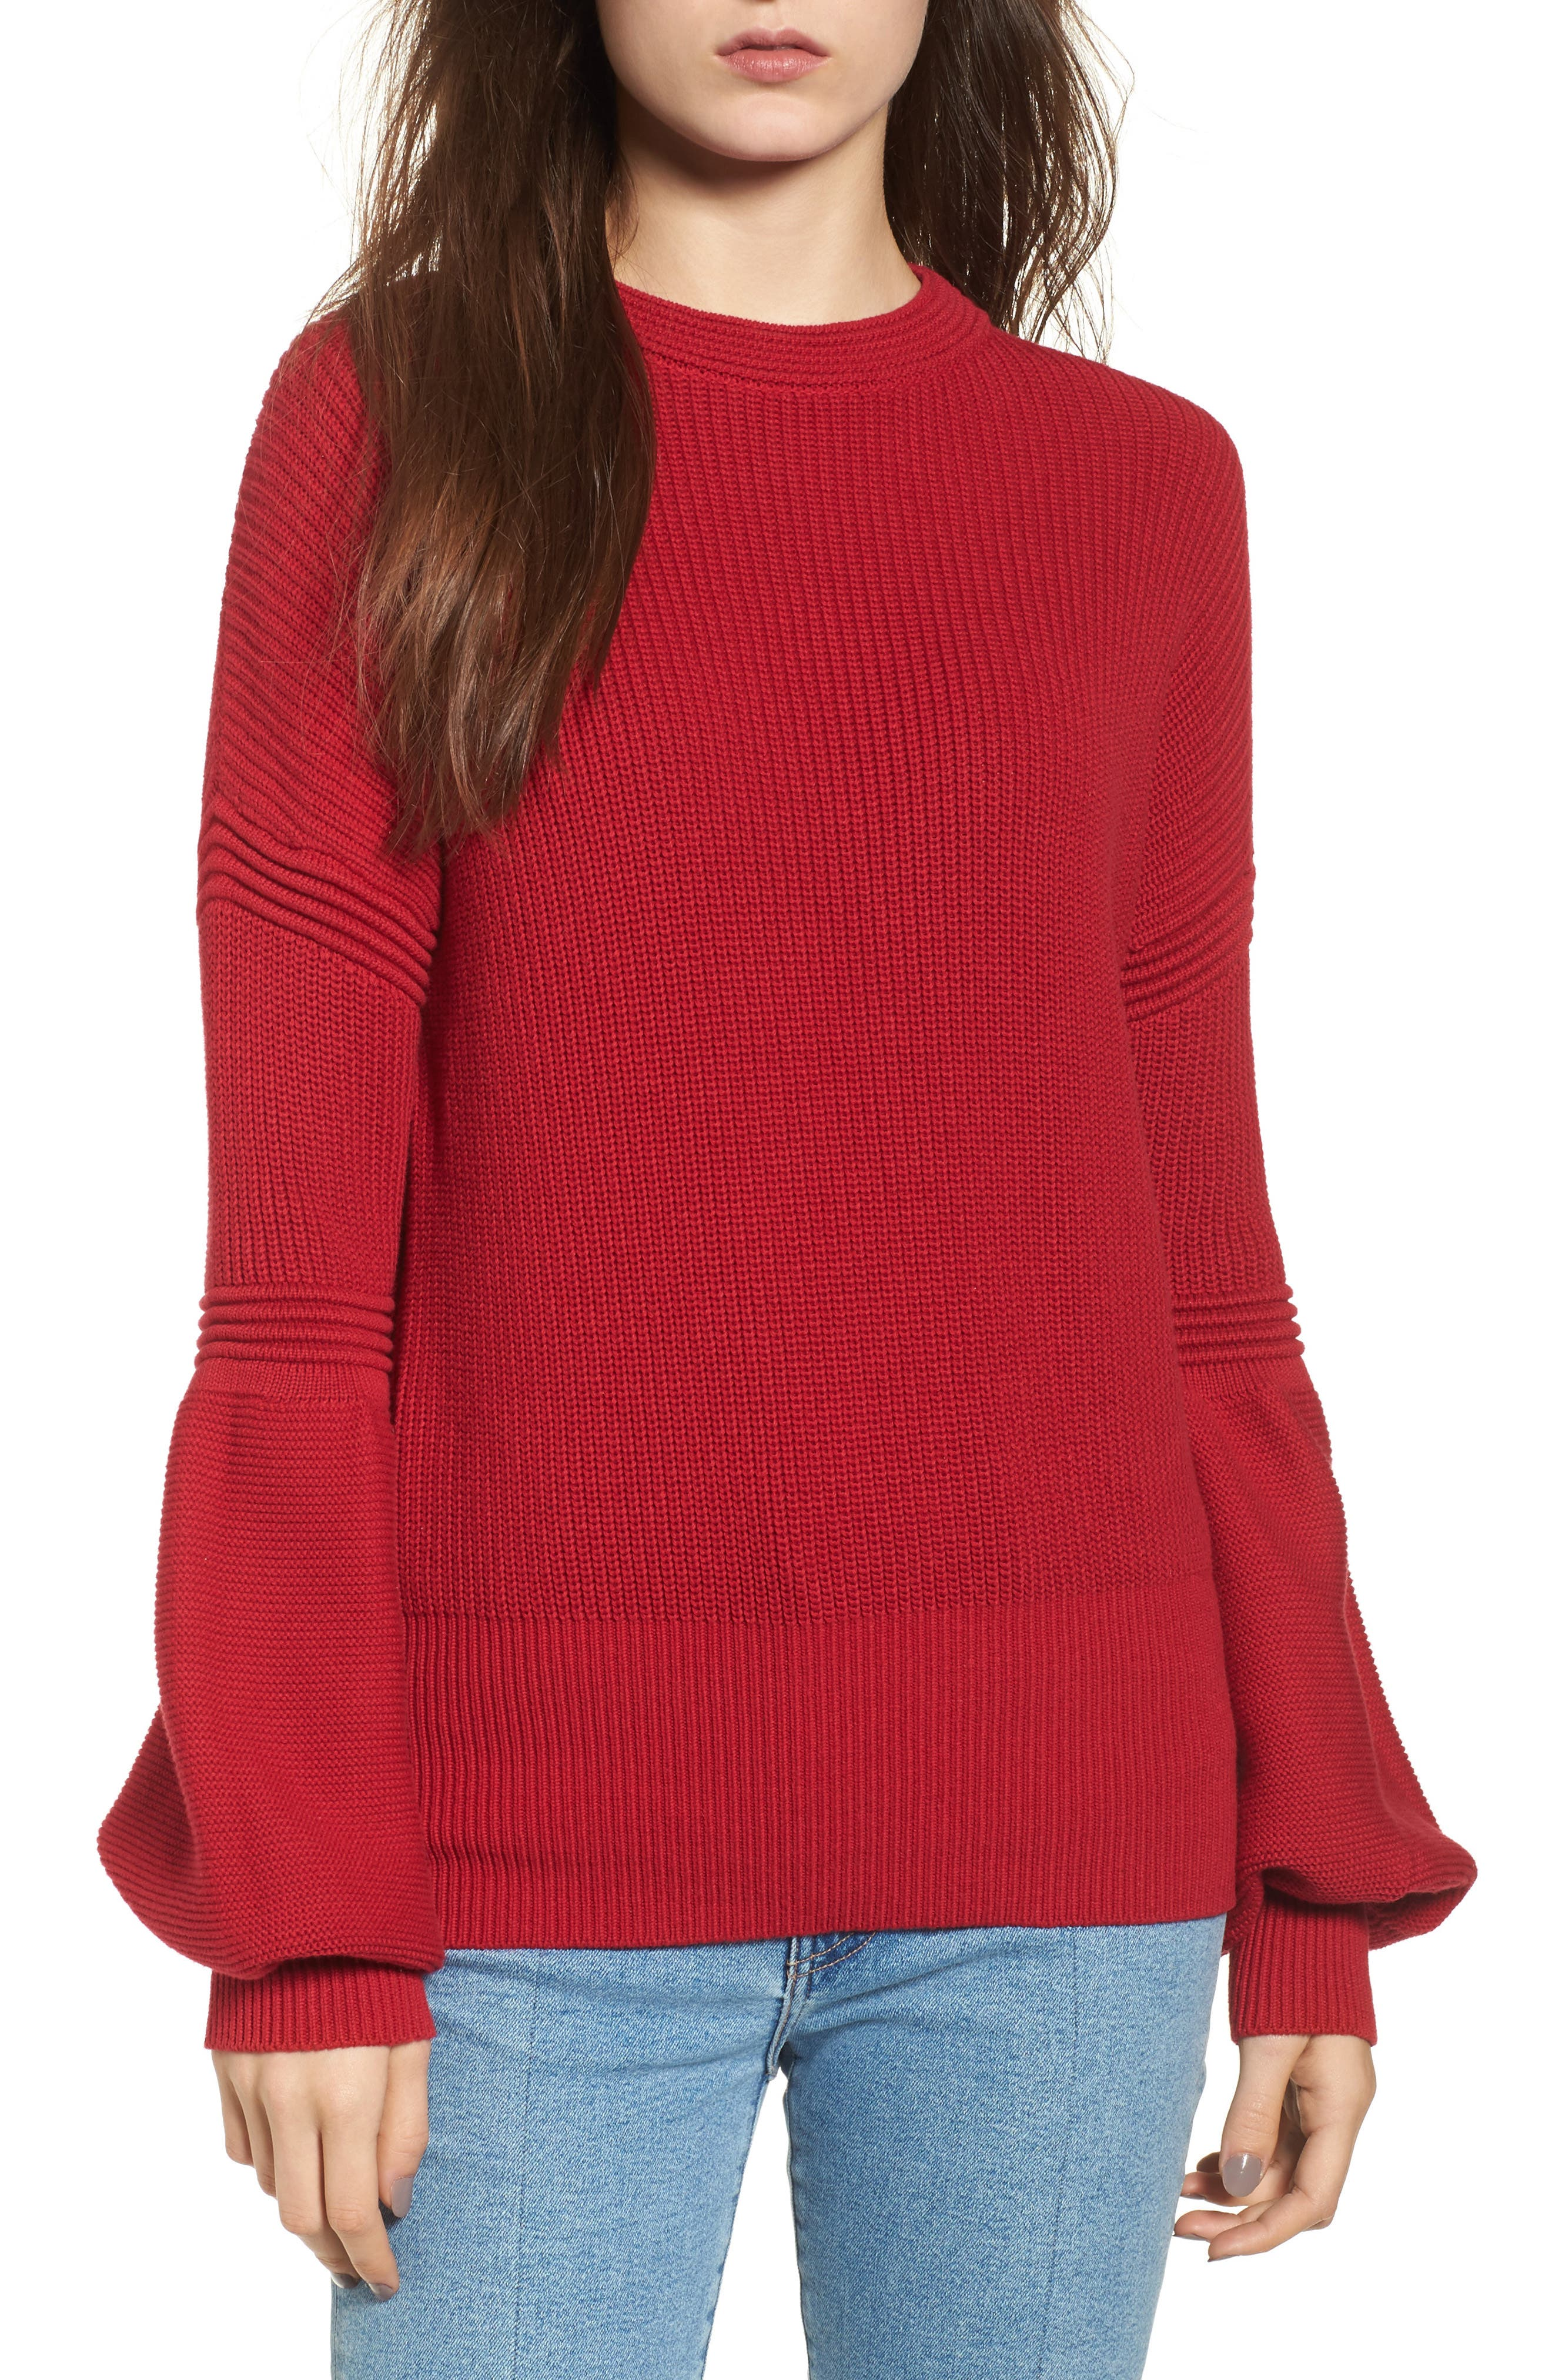 Main Image - The Fifth Label Sculpture Puff Sleeve Sweater